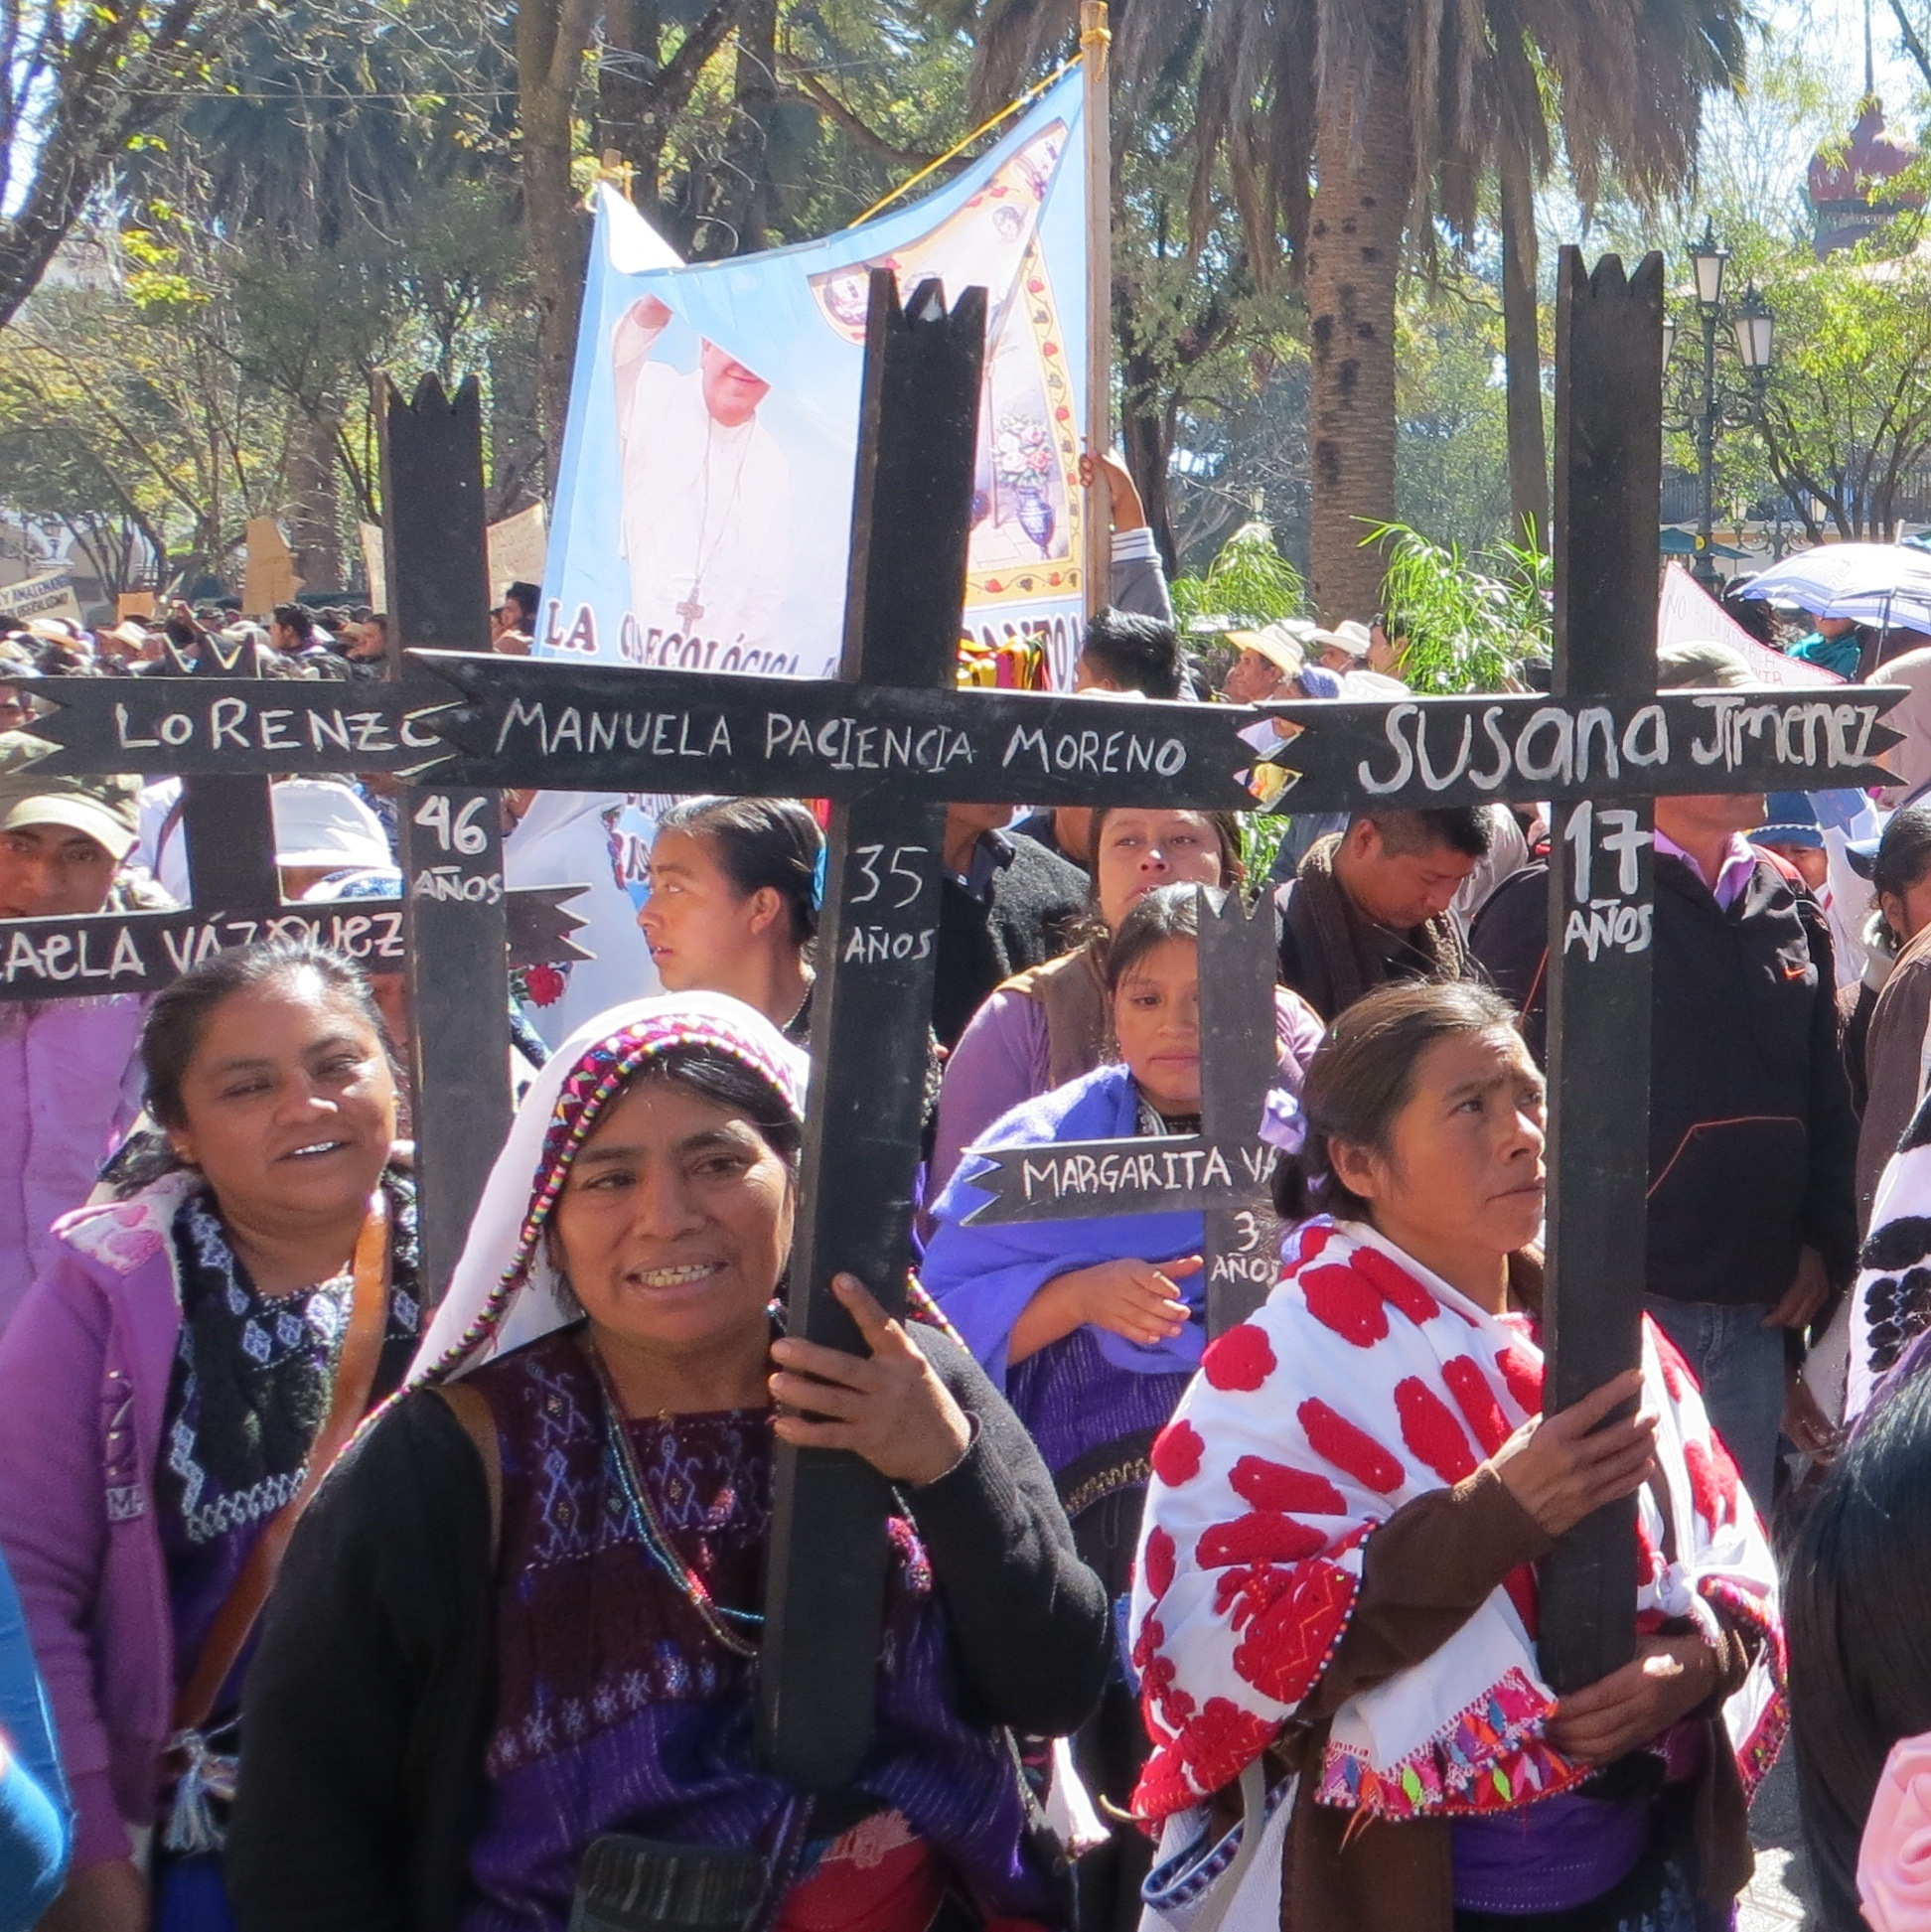 Procession of indigenous Catholic women in Chiapas, Mexico